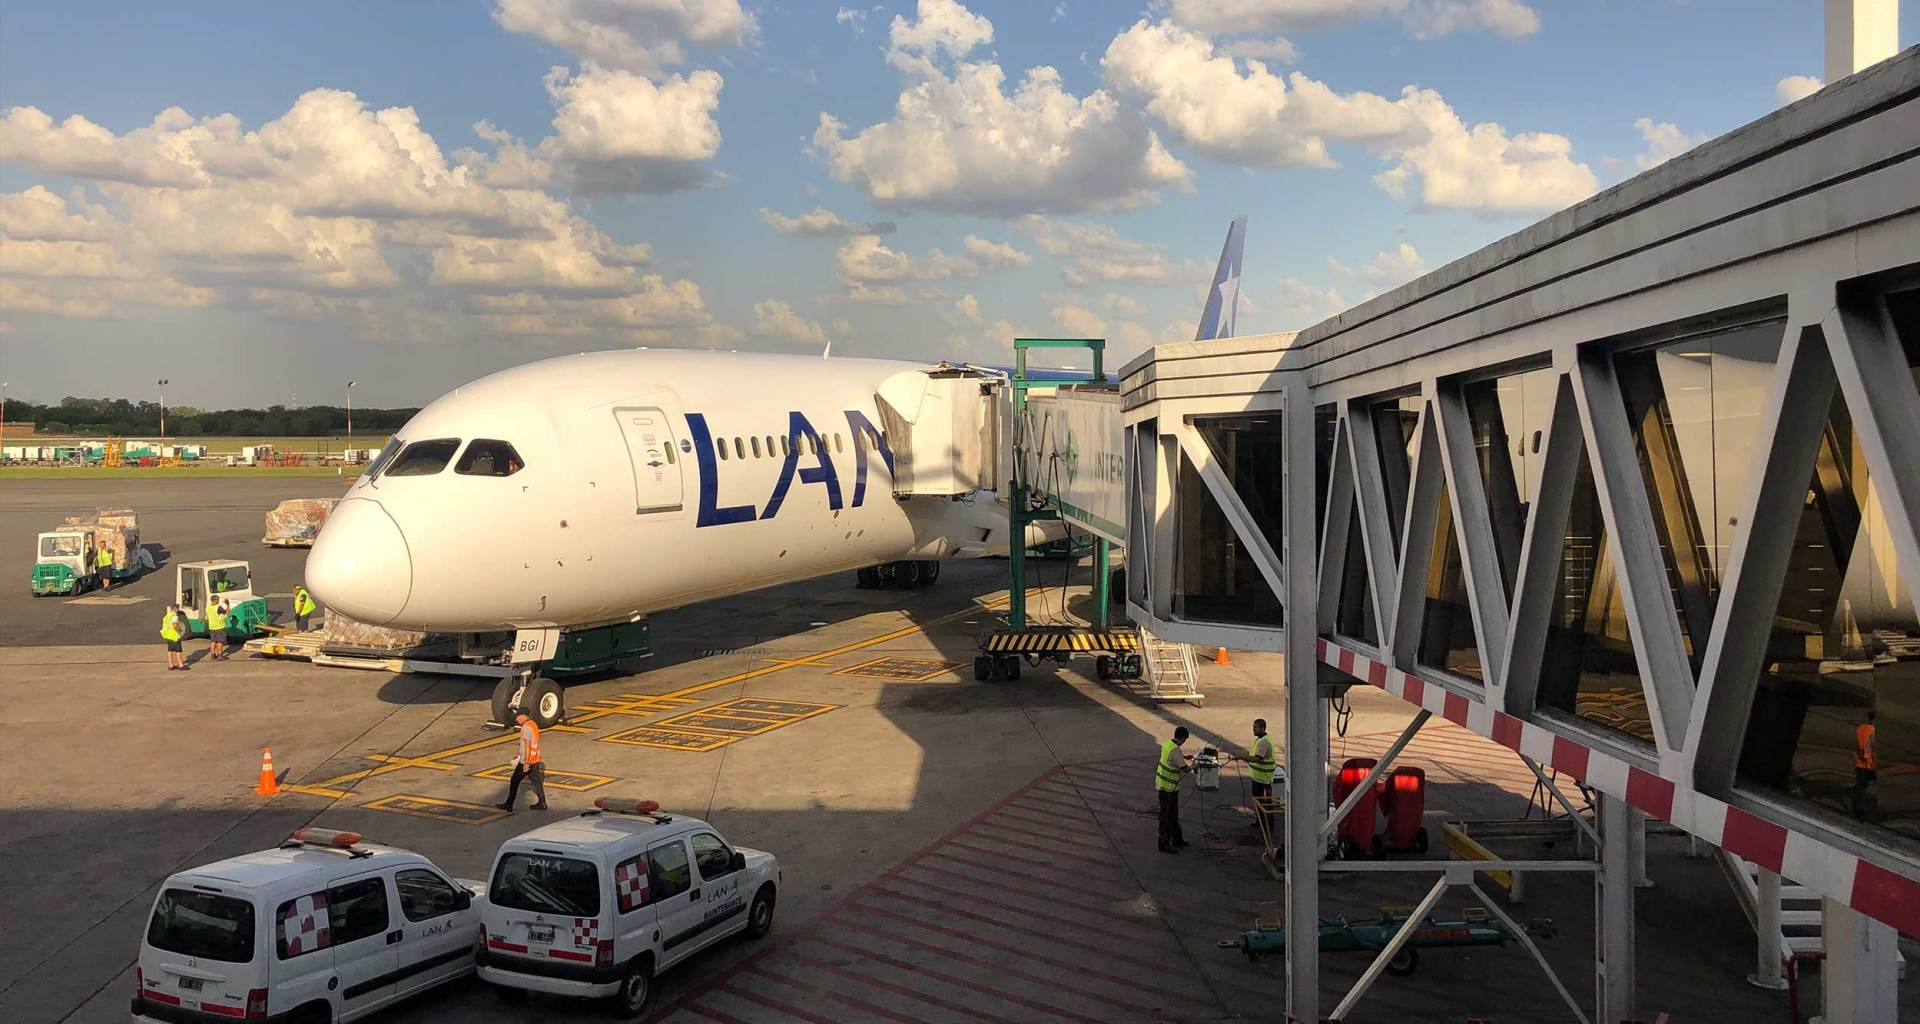 LATAM Airlines Boeing 787 connected to jet bridge at Buenos Aires Airport.